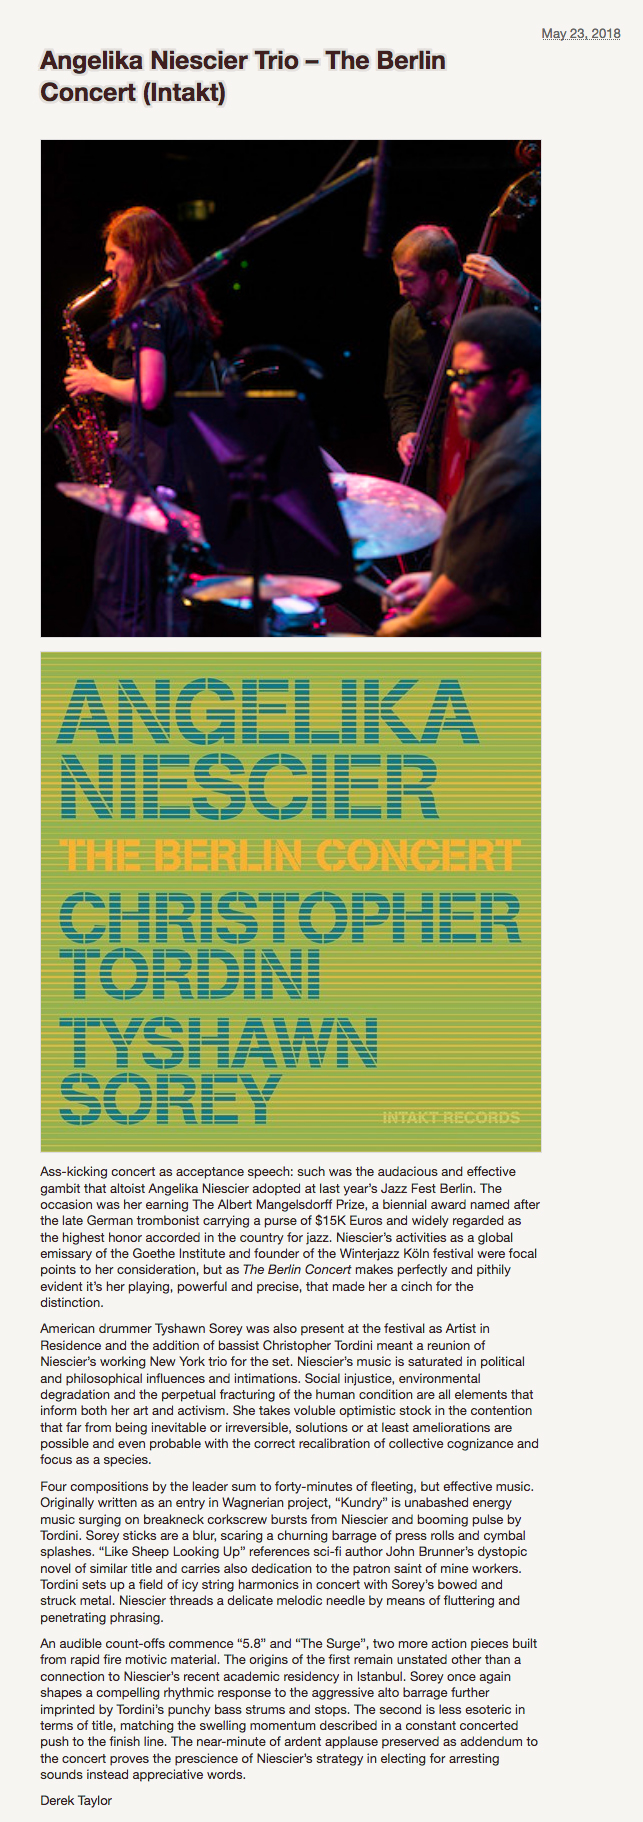 Derek Taylor reviews Angelika Niescier Berlin Concert Dusted Magazine